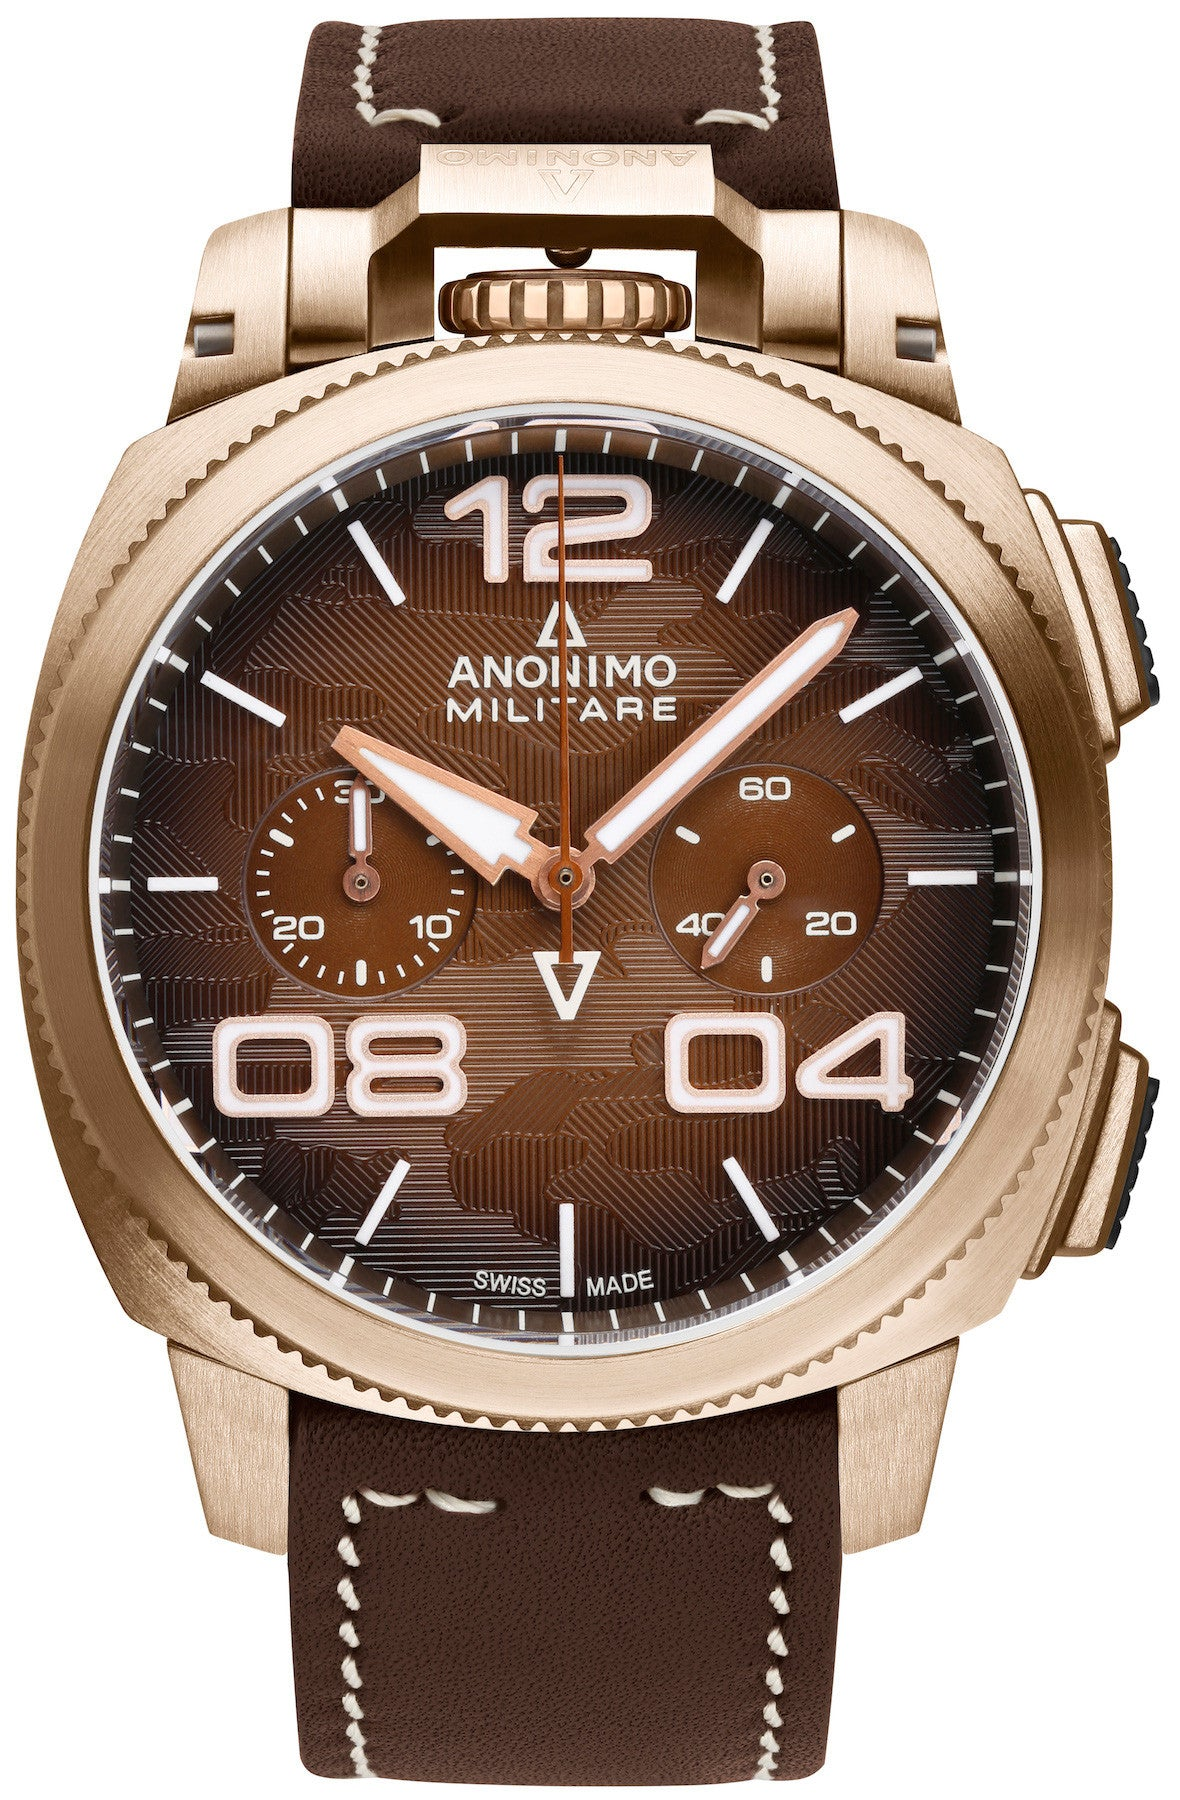 Anonimo Watch Militare Alpina Camouflage Brown Limited Edition